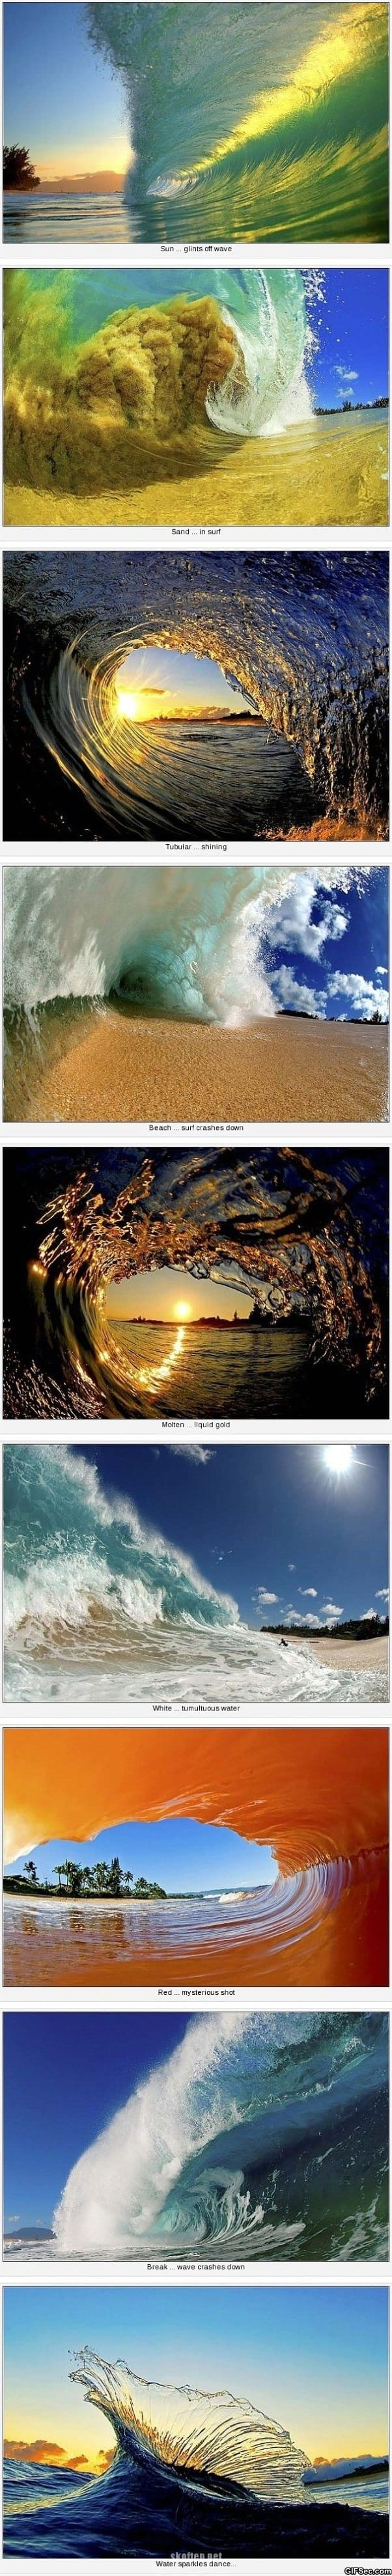 just-some-awesome-waves